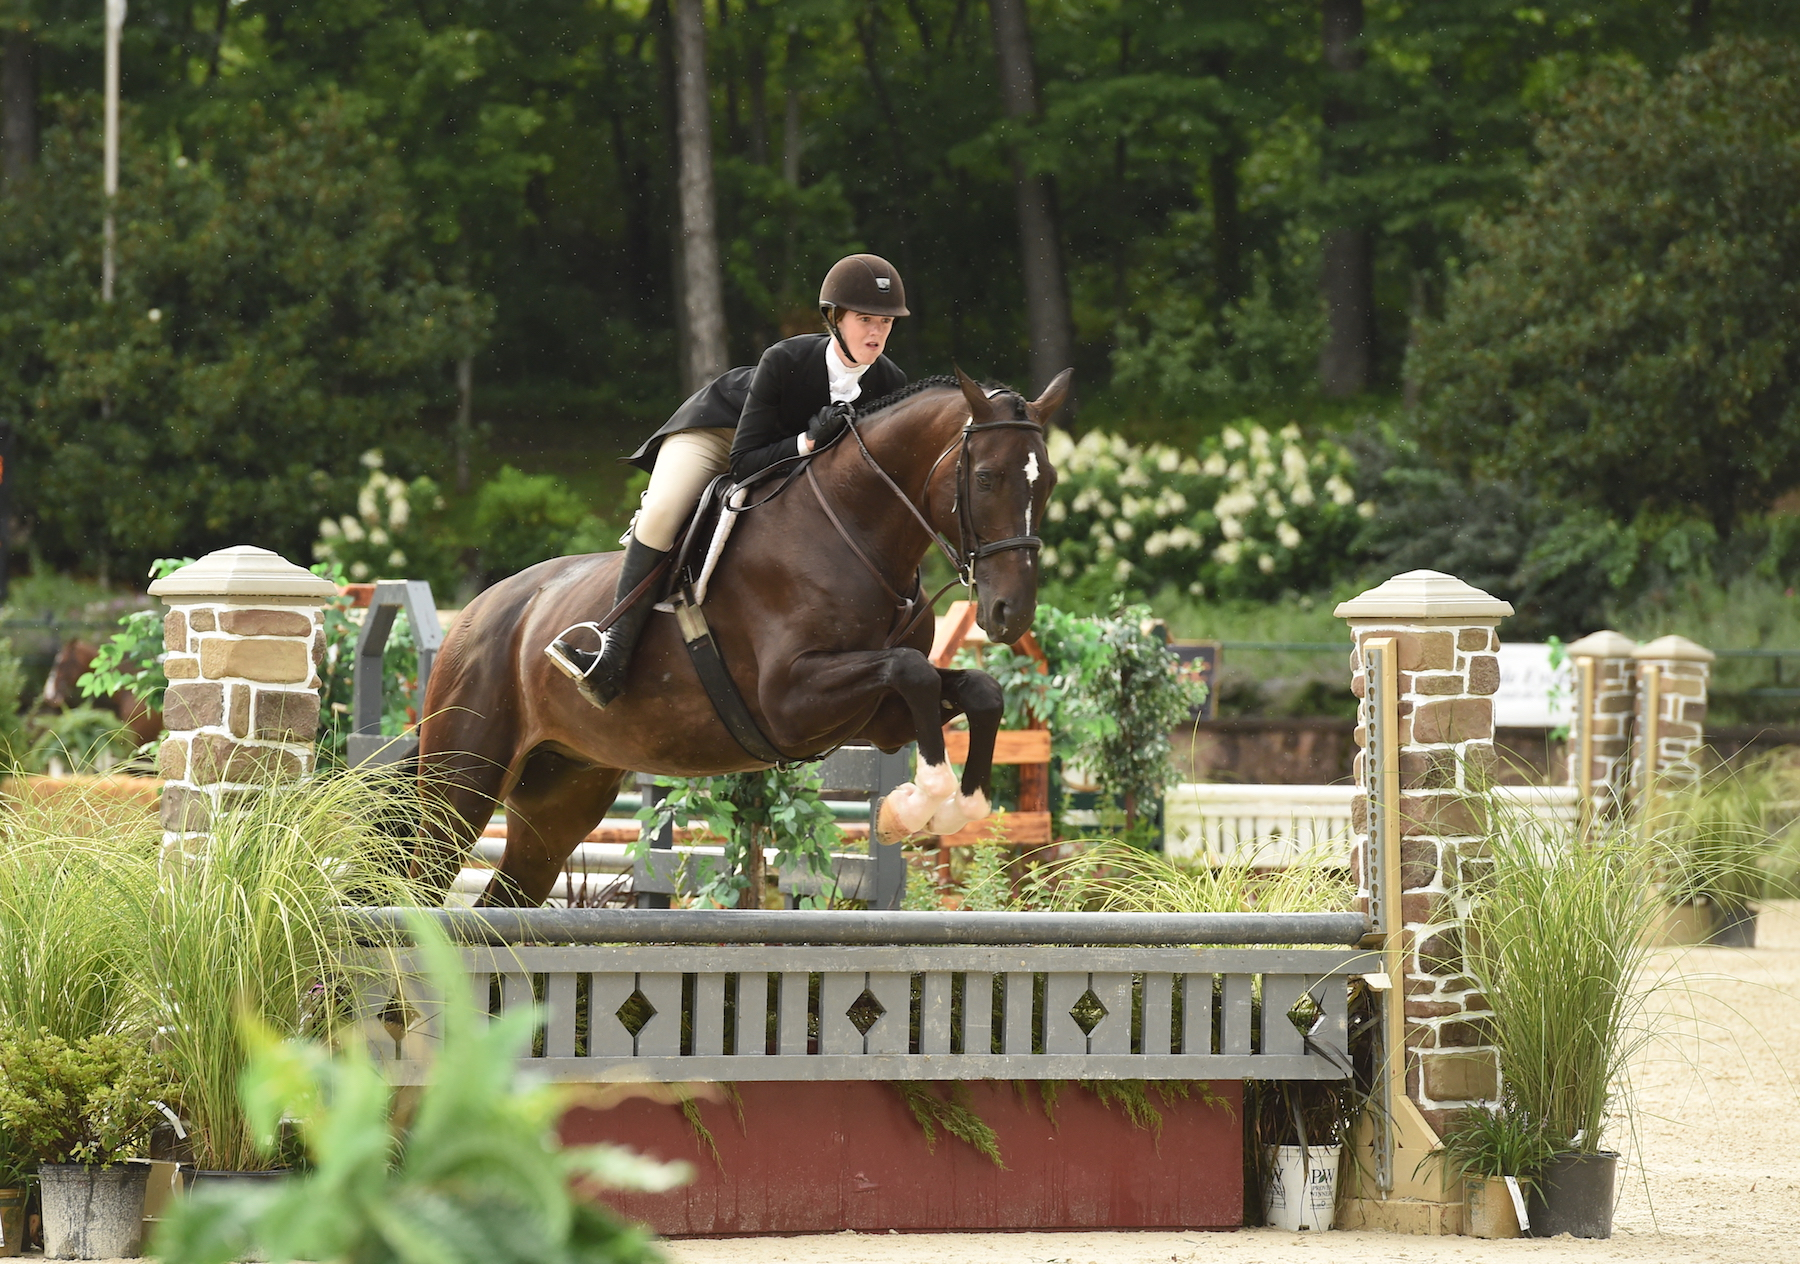 Devon Thomas and Diabolo earned third place. Photo by Anne Gittins Photography